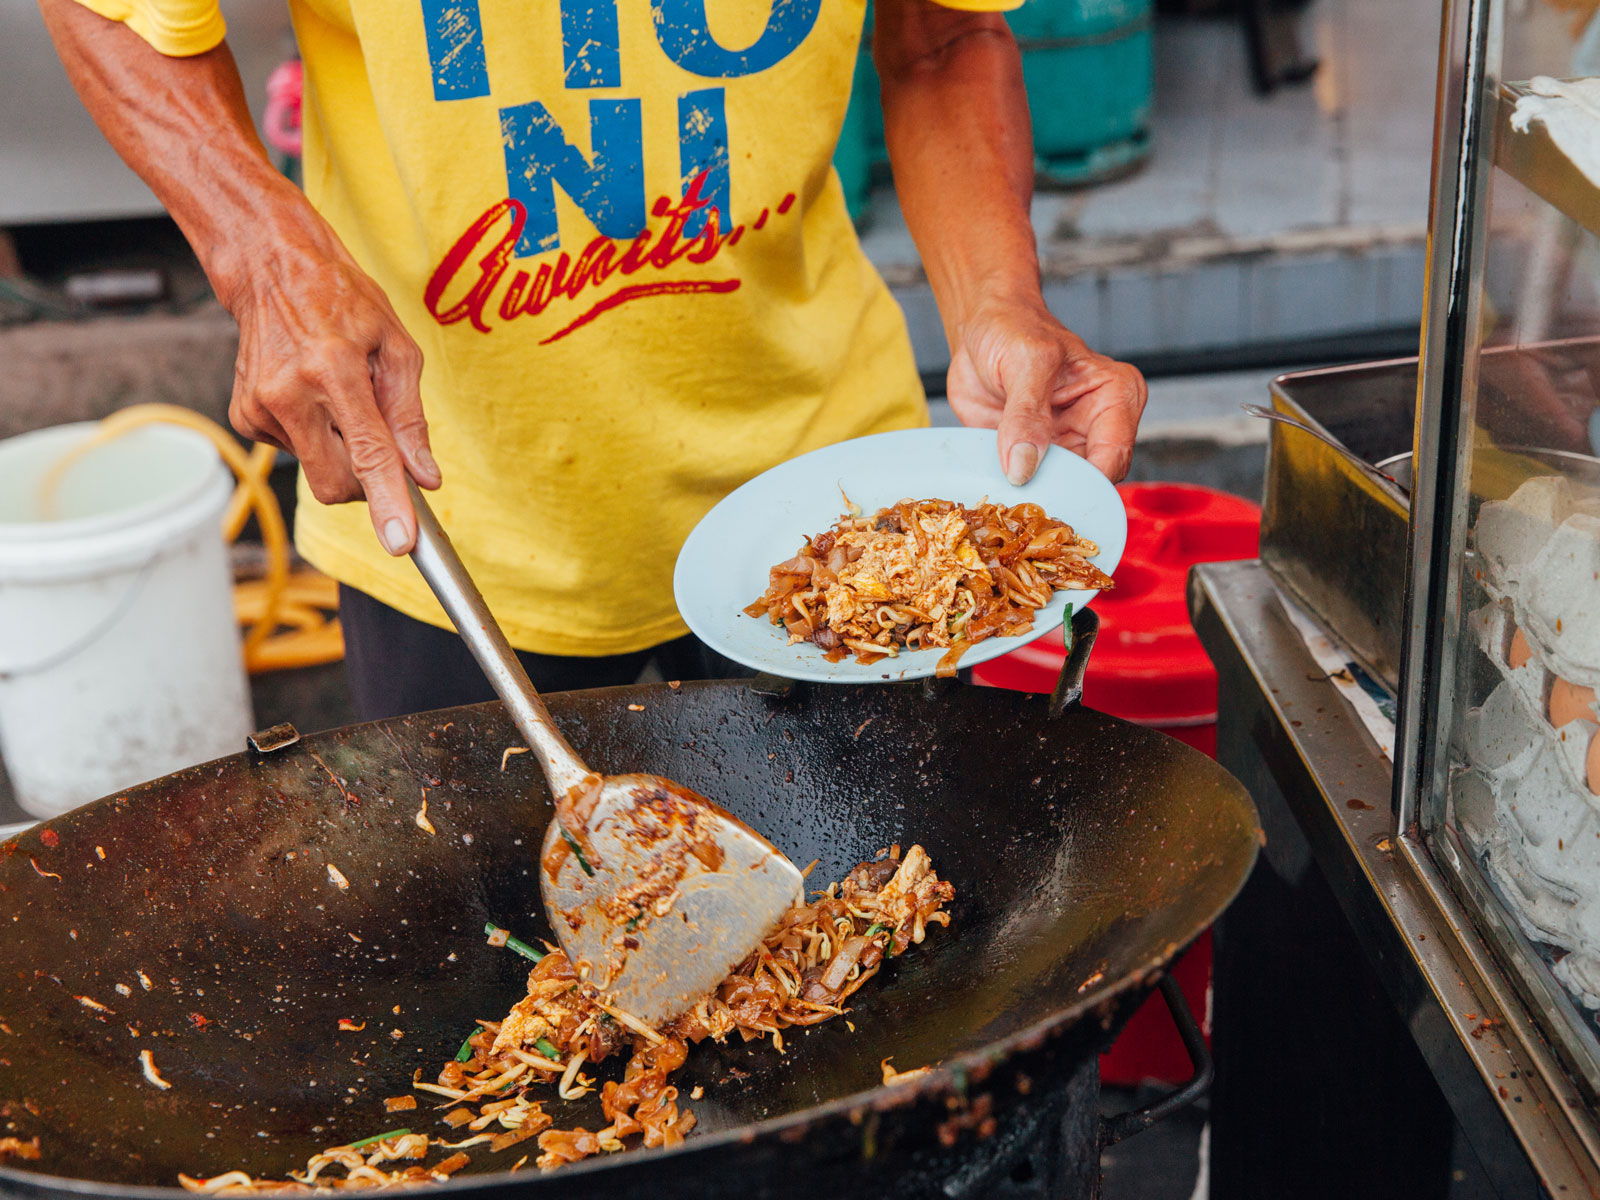 Chef's Table' Team Takes on Street Food for Netflix | Food